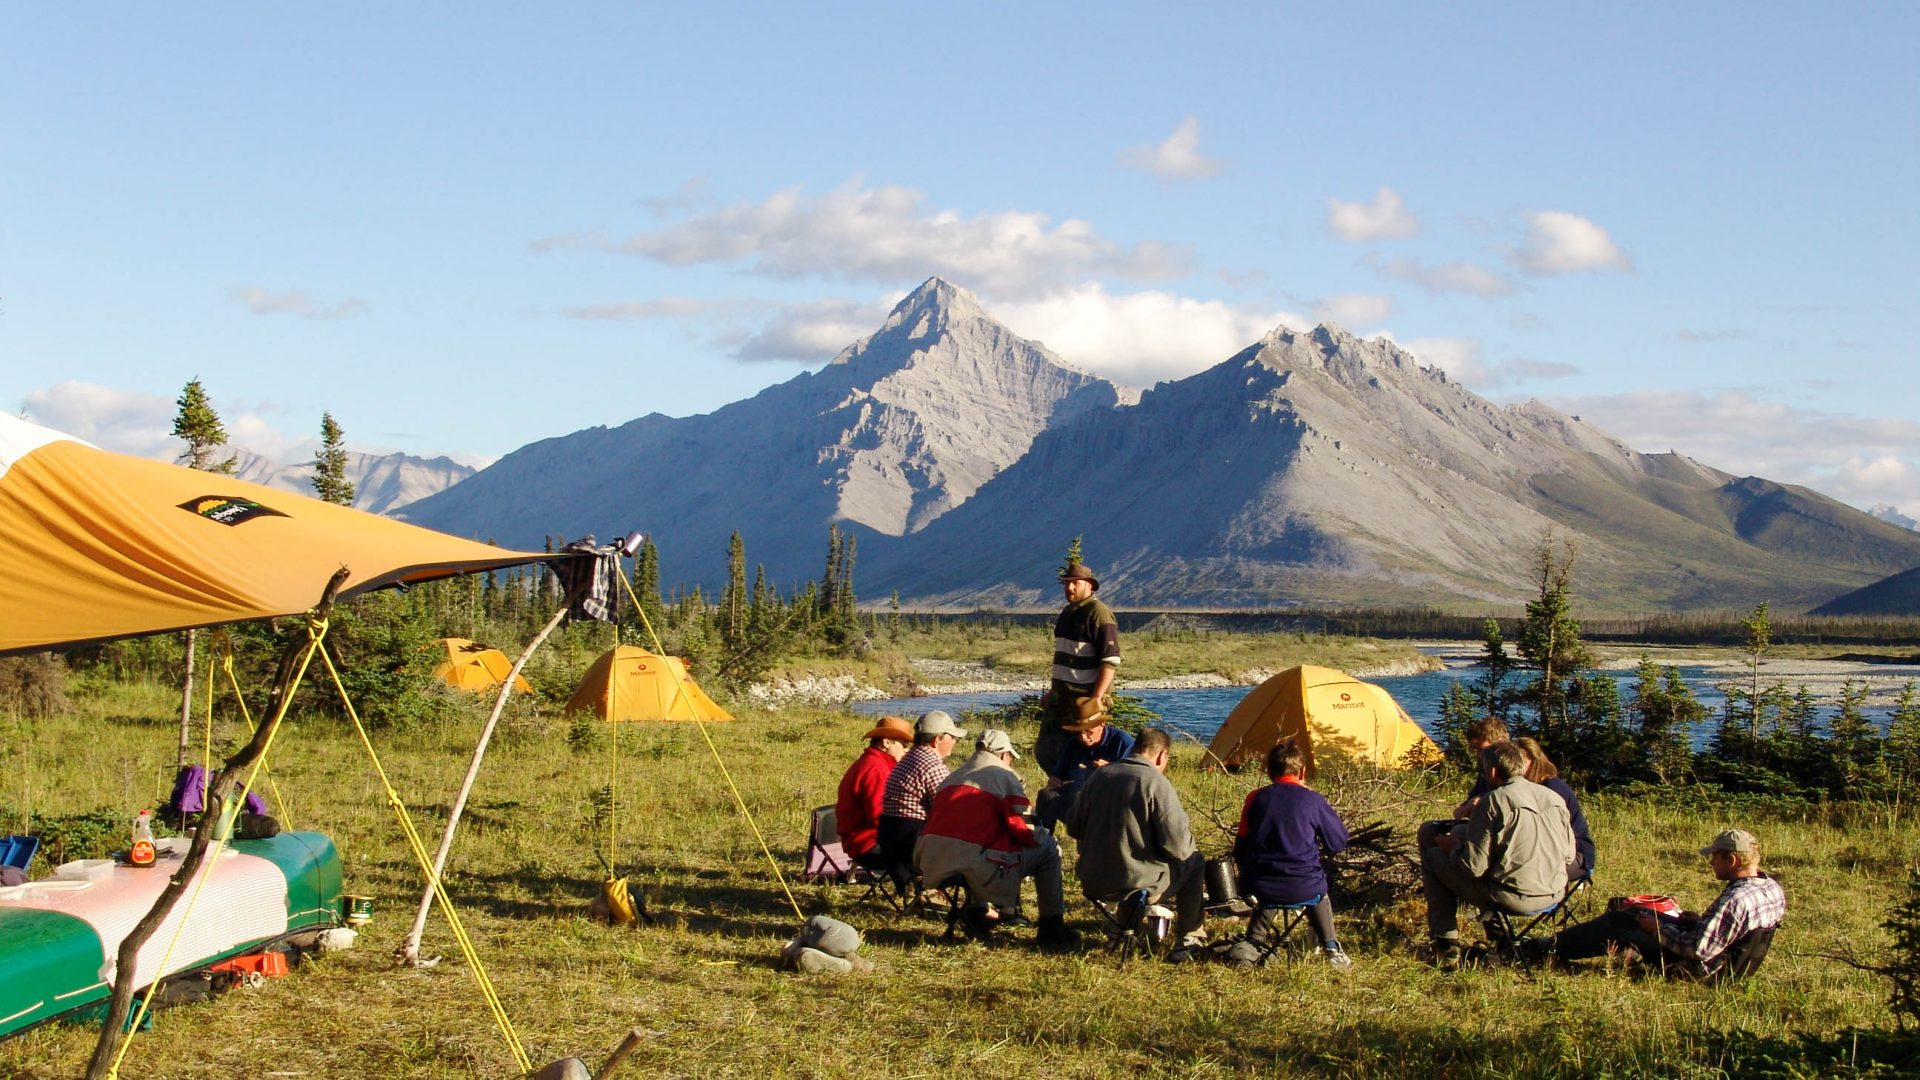 The Heart of the Yukon - Wind River fantastic landscapes